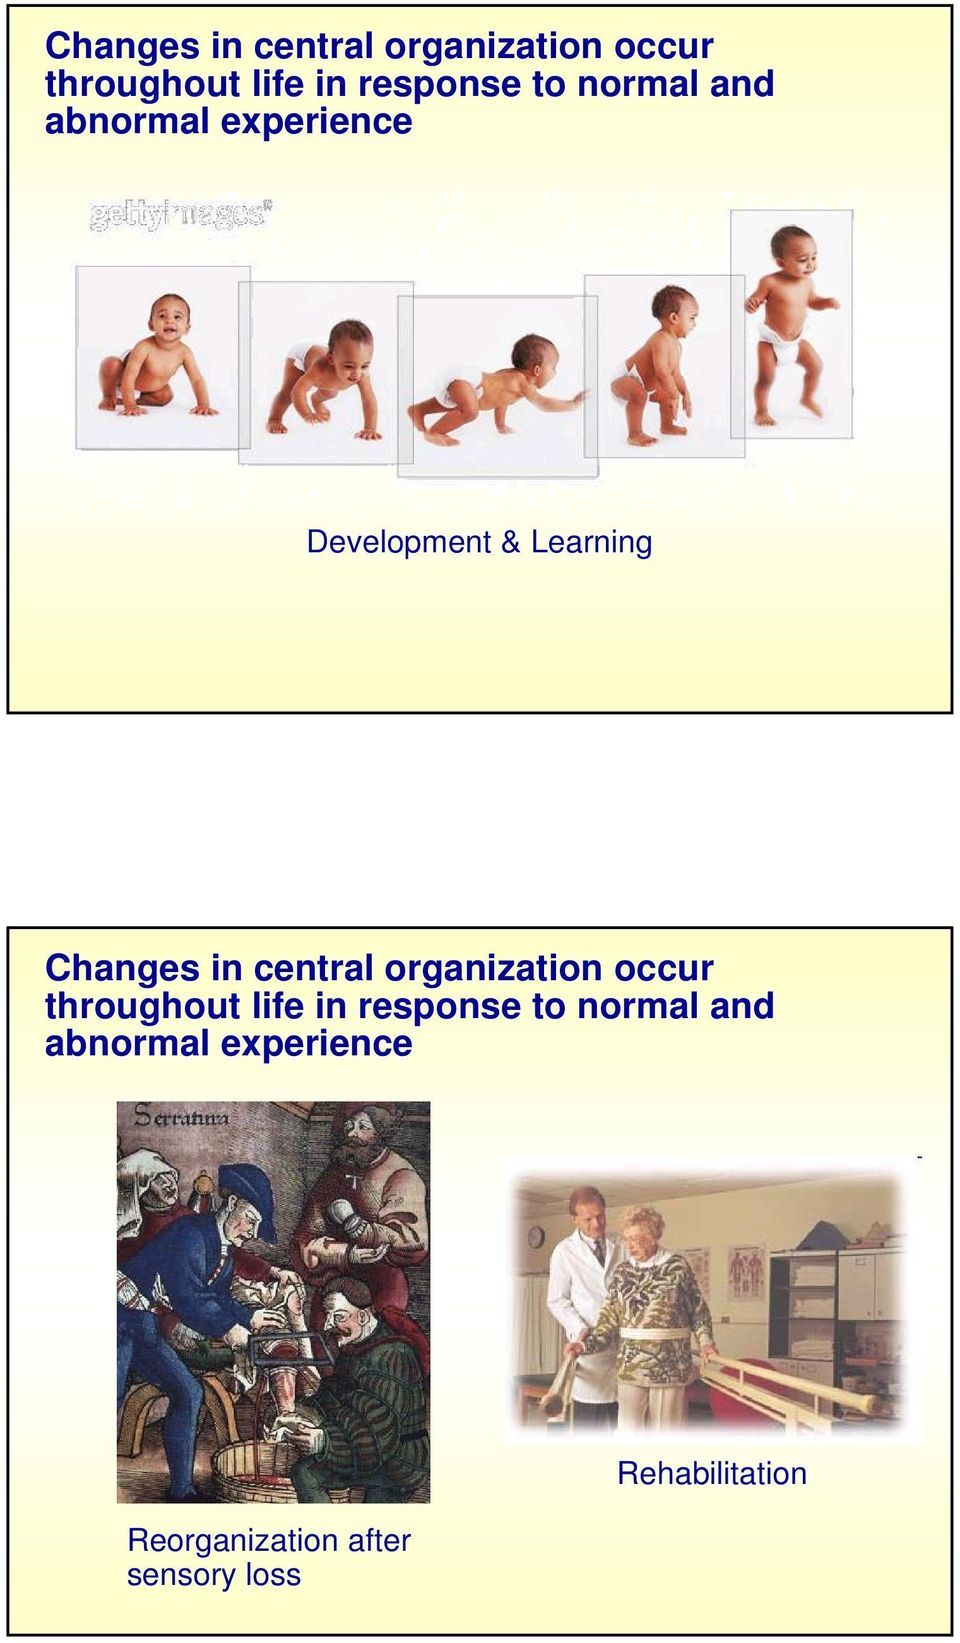 and abnormal experience Reorganization after sensory loss